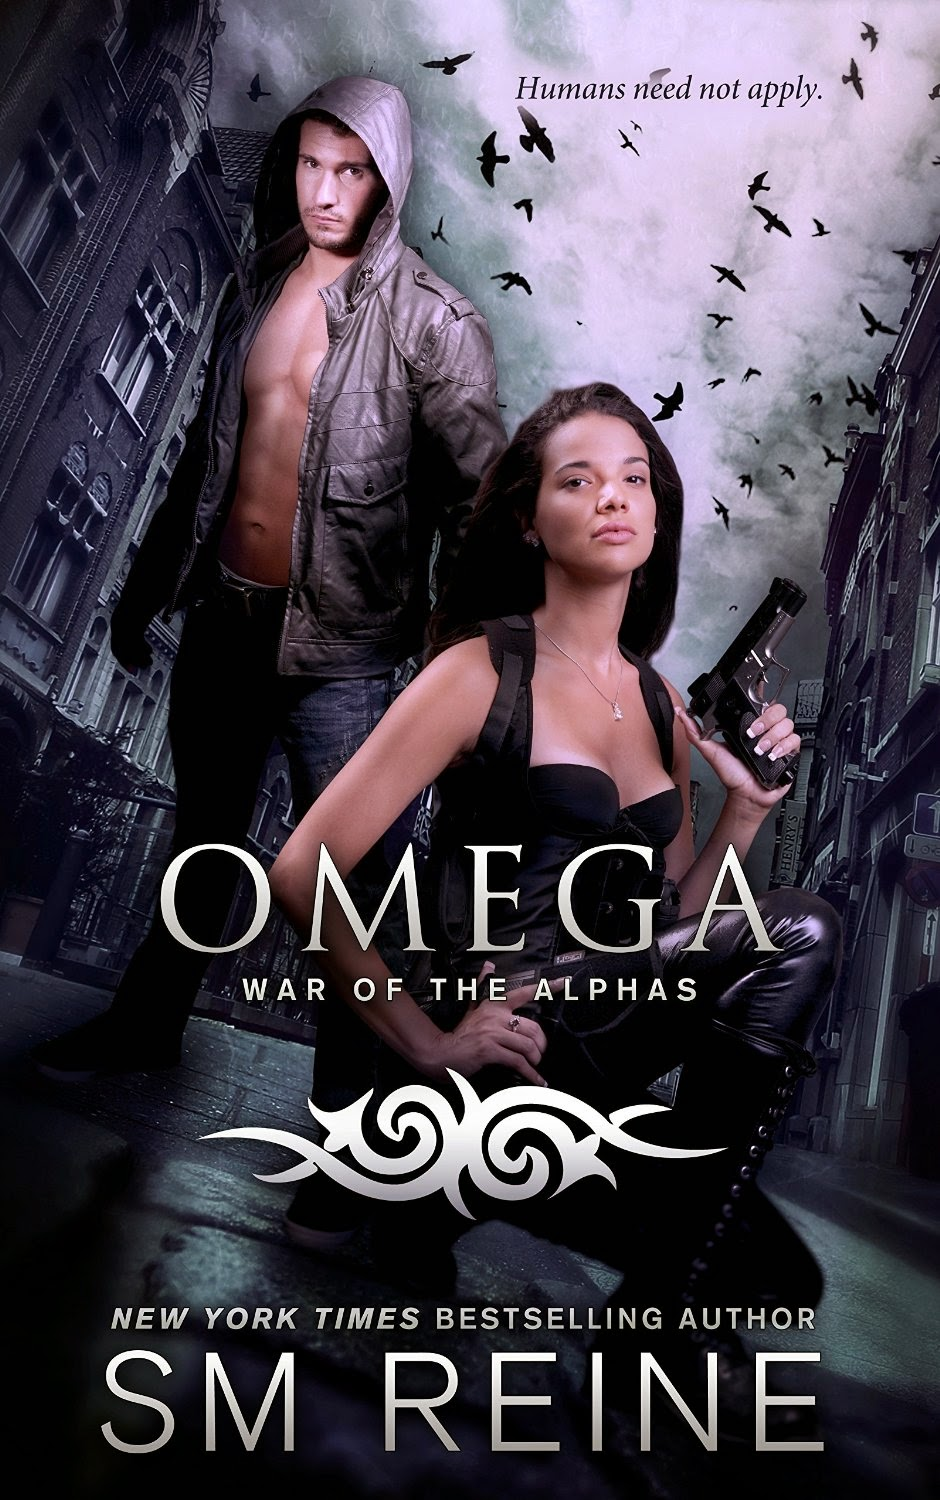 Omega by S.M. Reine